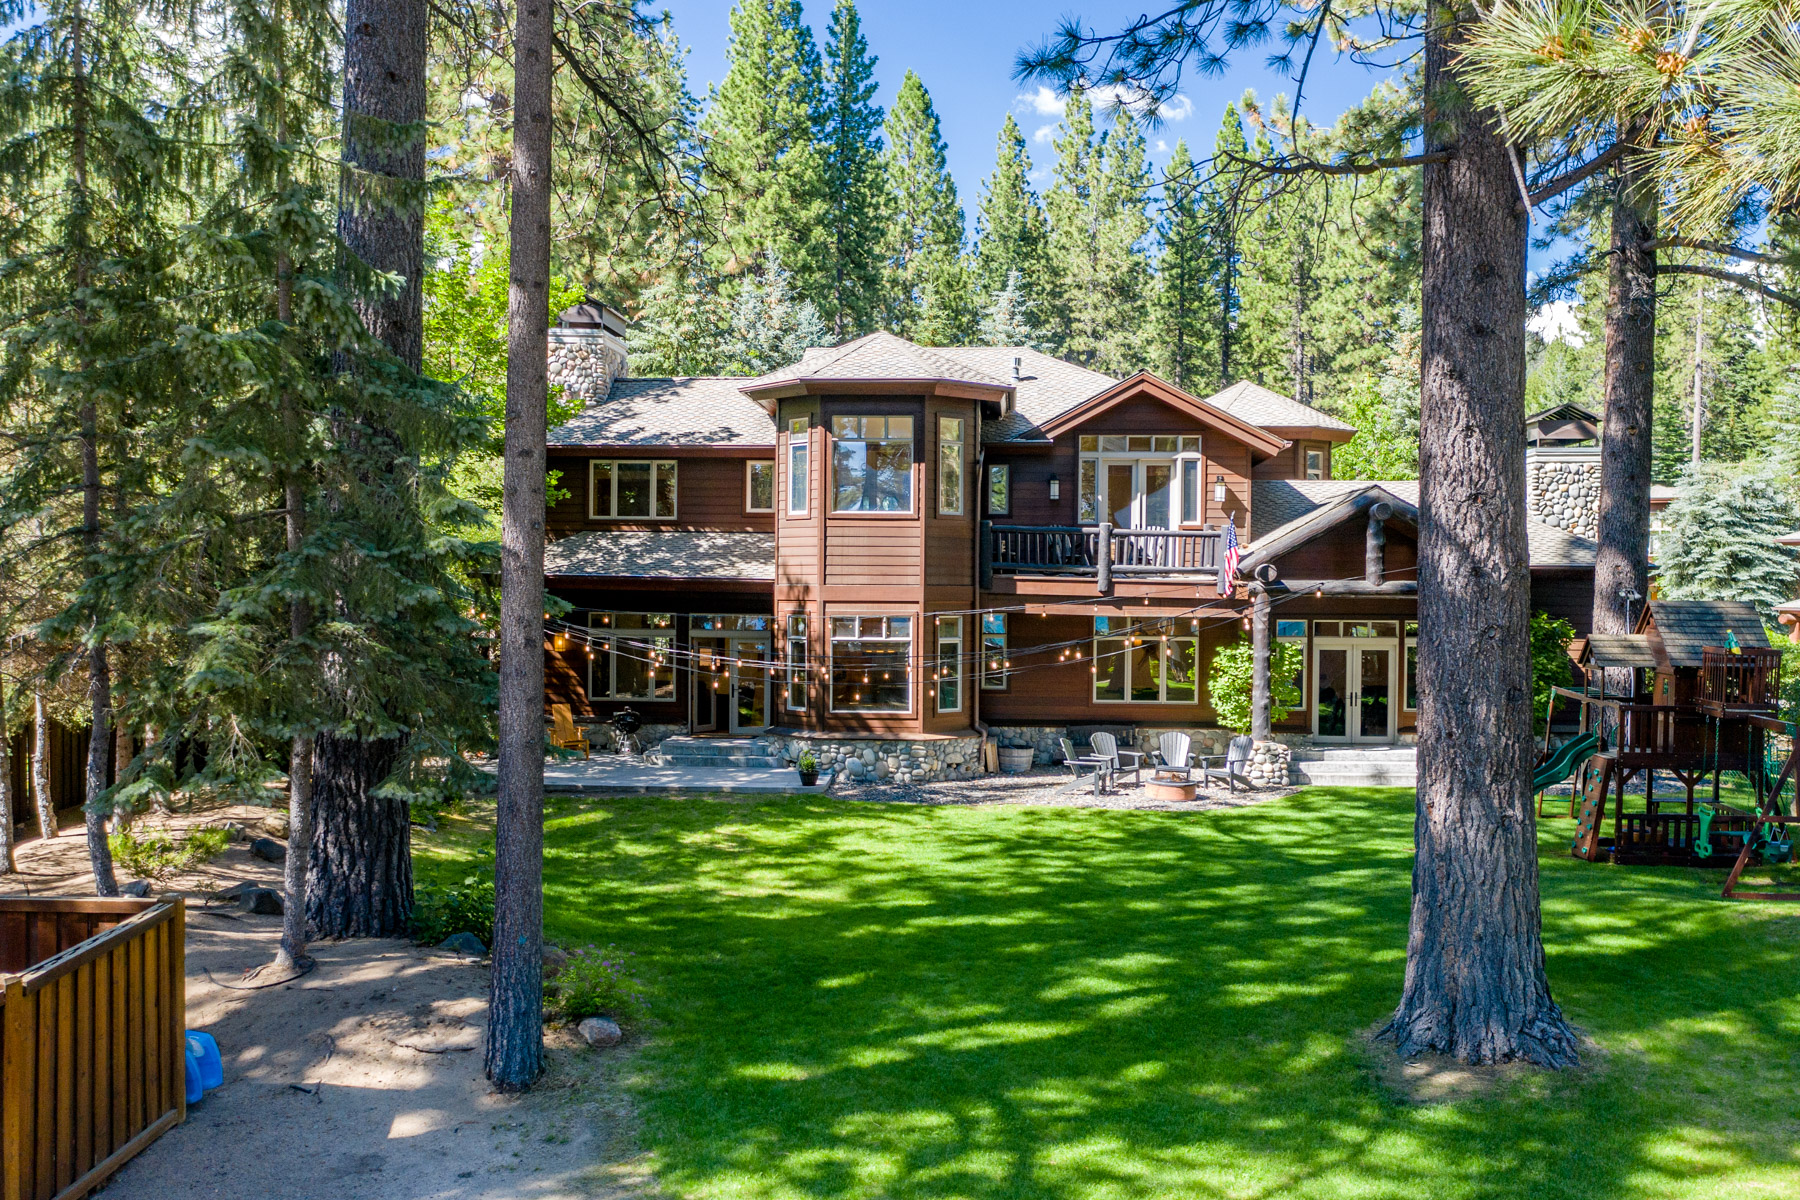 Property for Active at 948 Lakeshore View Ct, Incline Village, NV 948 Lakeshore View Court Incline Village, Nevada 89451 United States